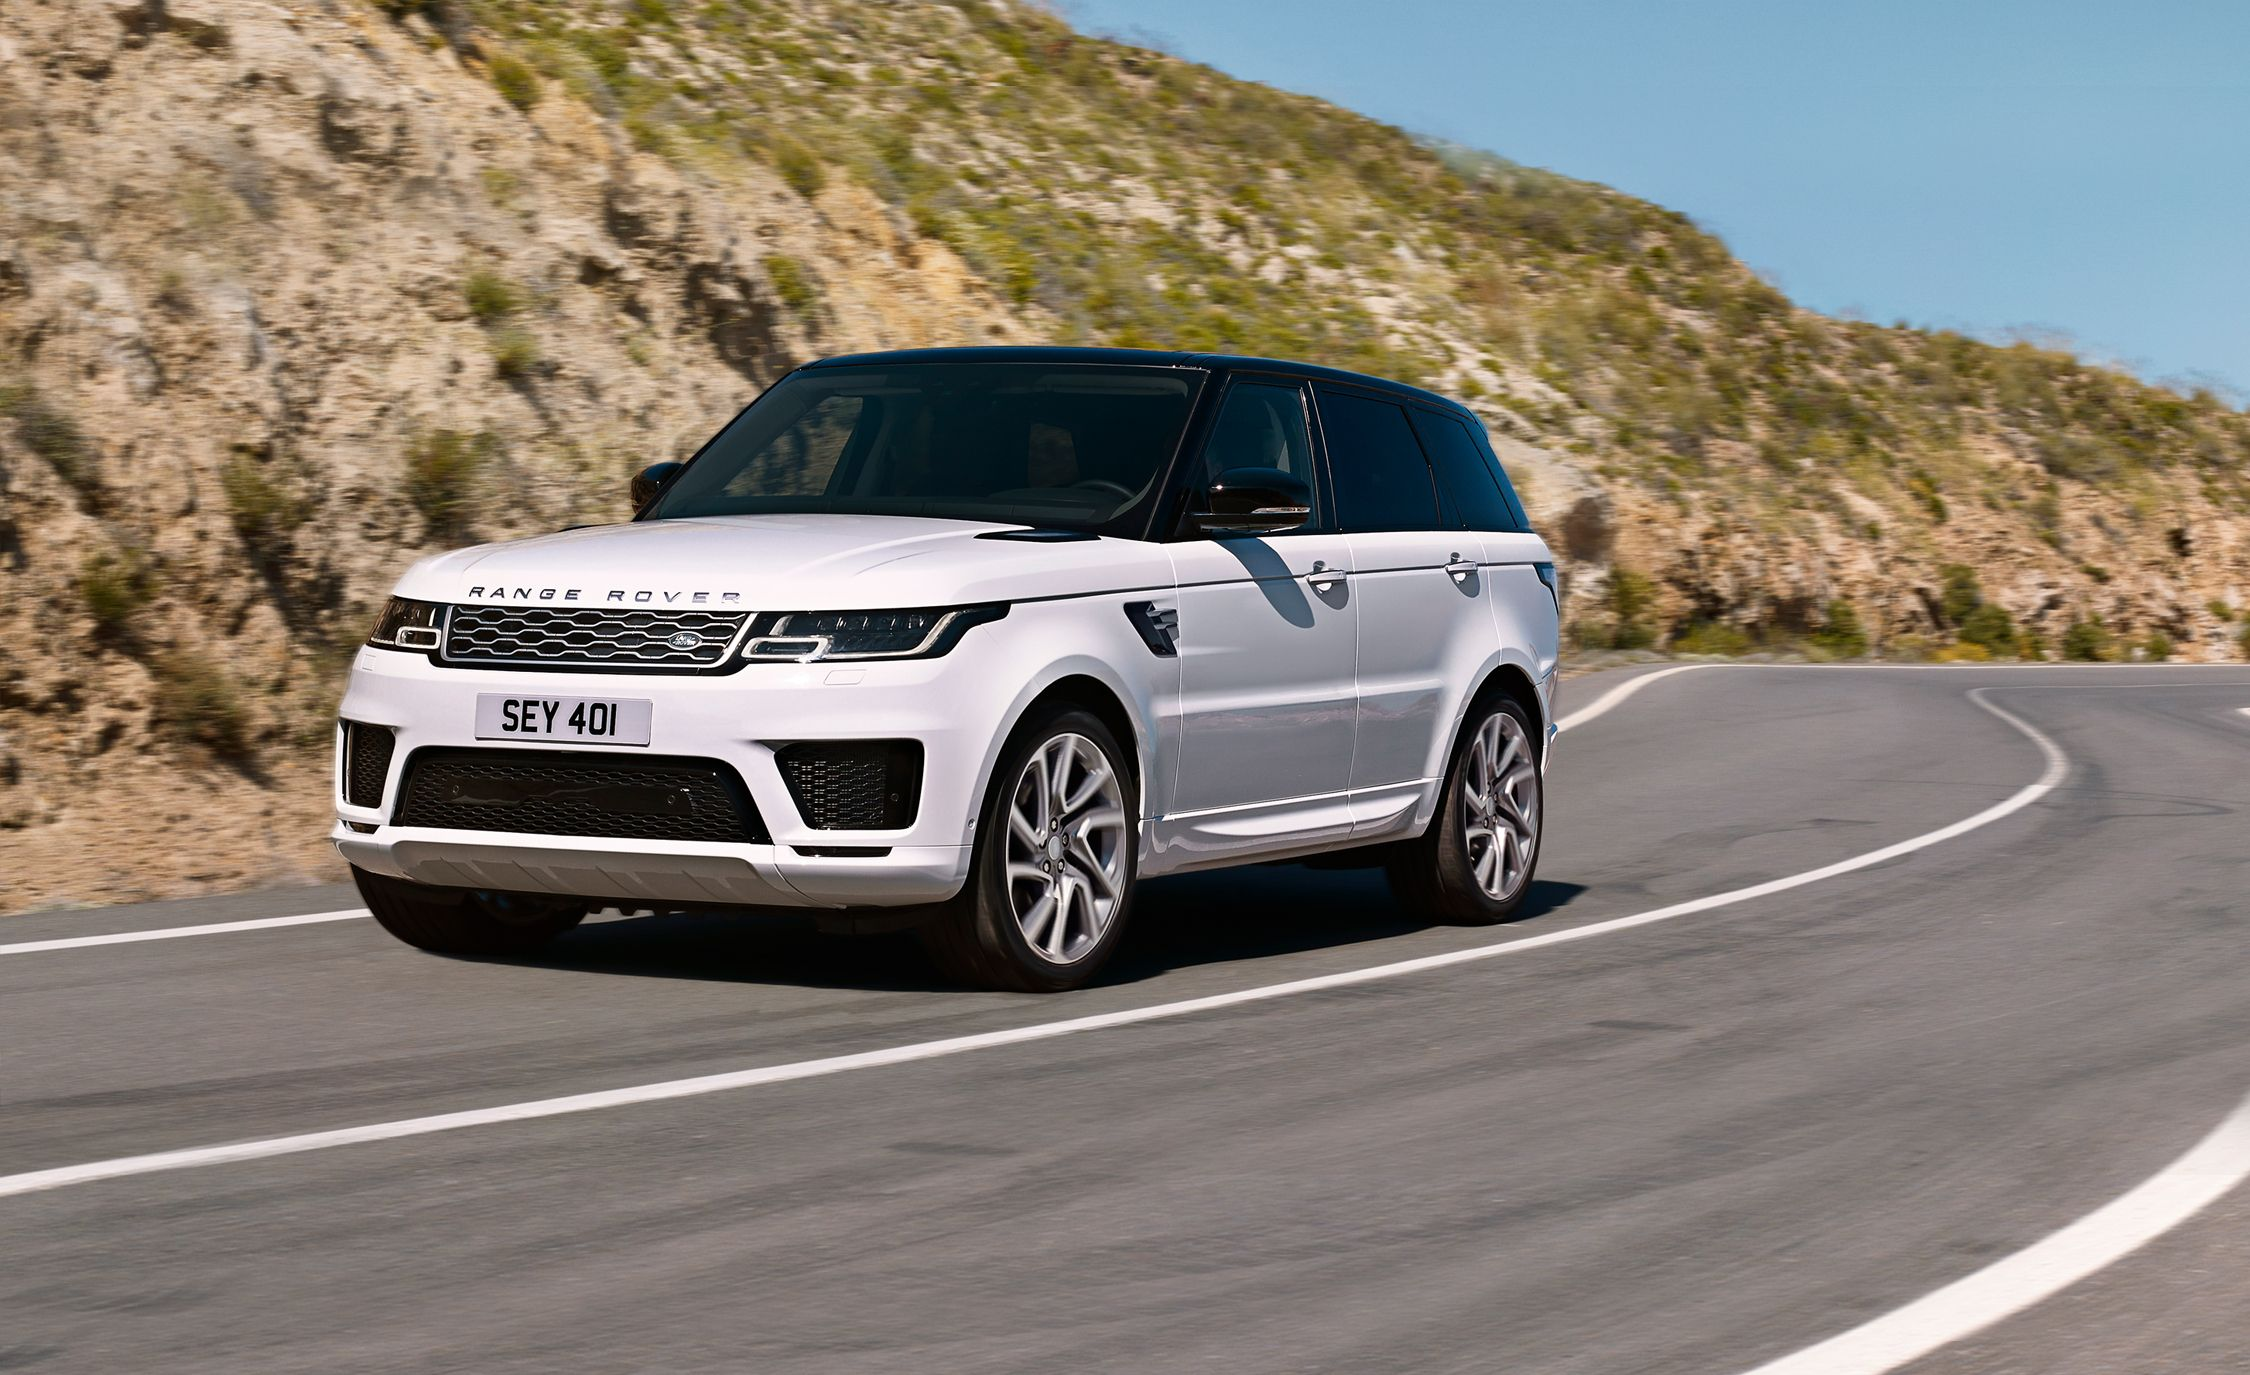 2019 range rover sport p400e photos and info news car and driver. Black Bedroom Furniture Sets. Home Design Ideas